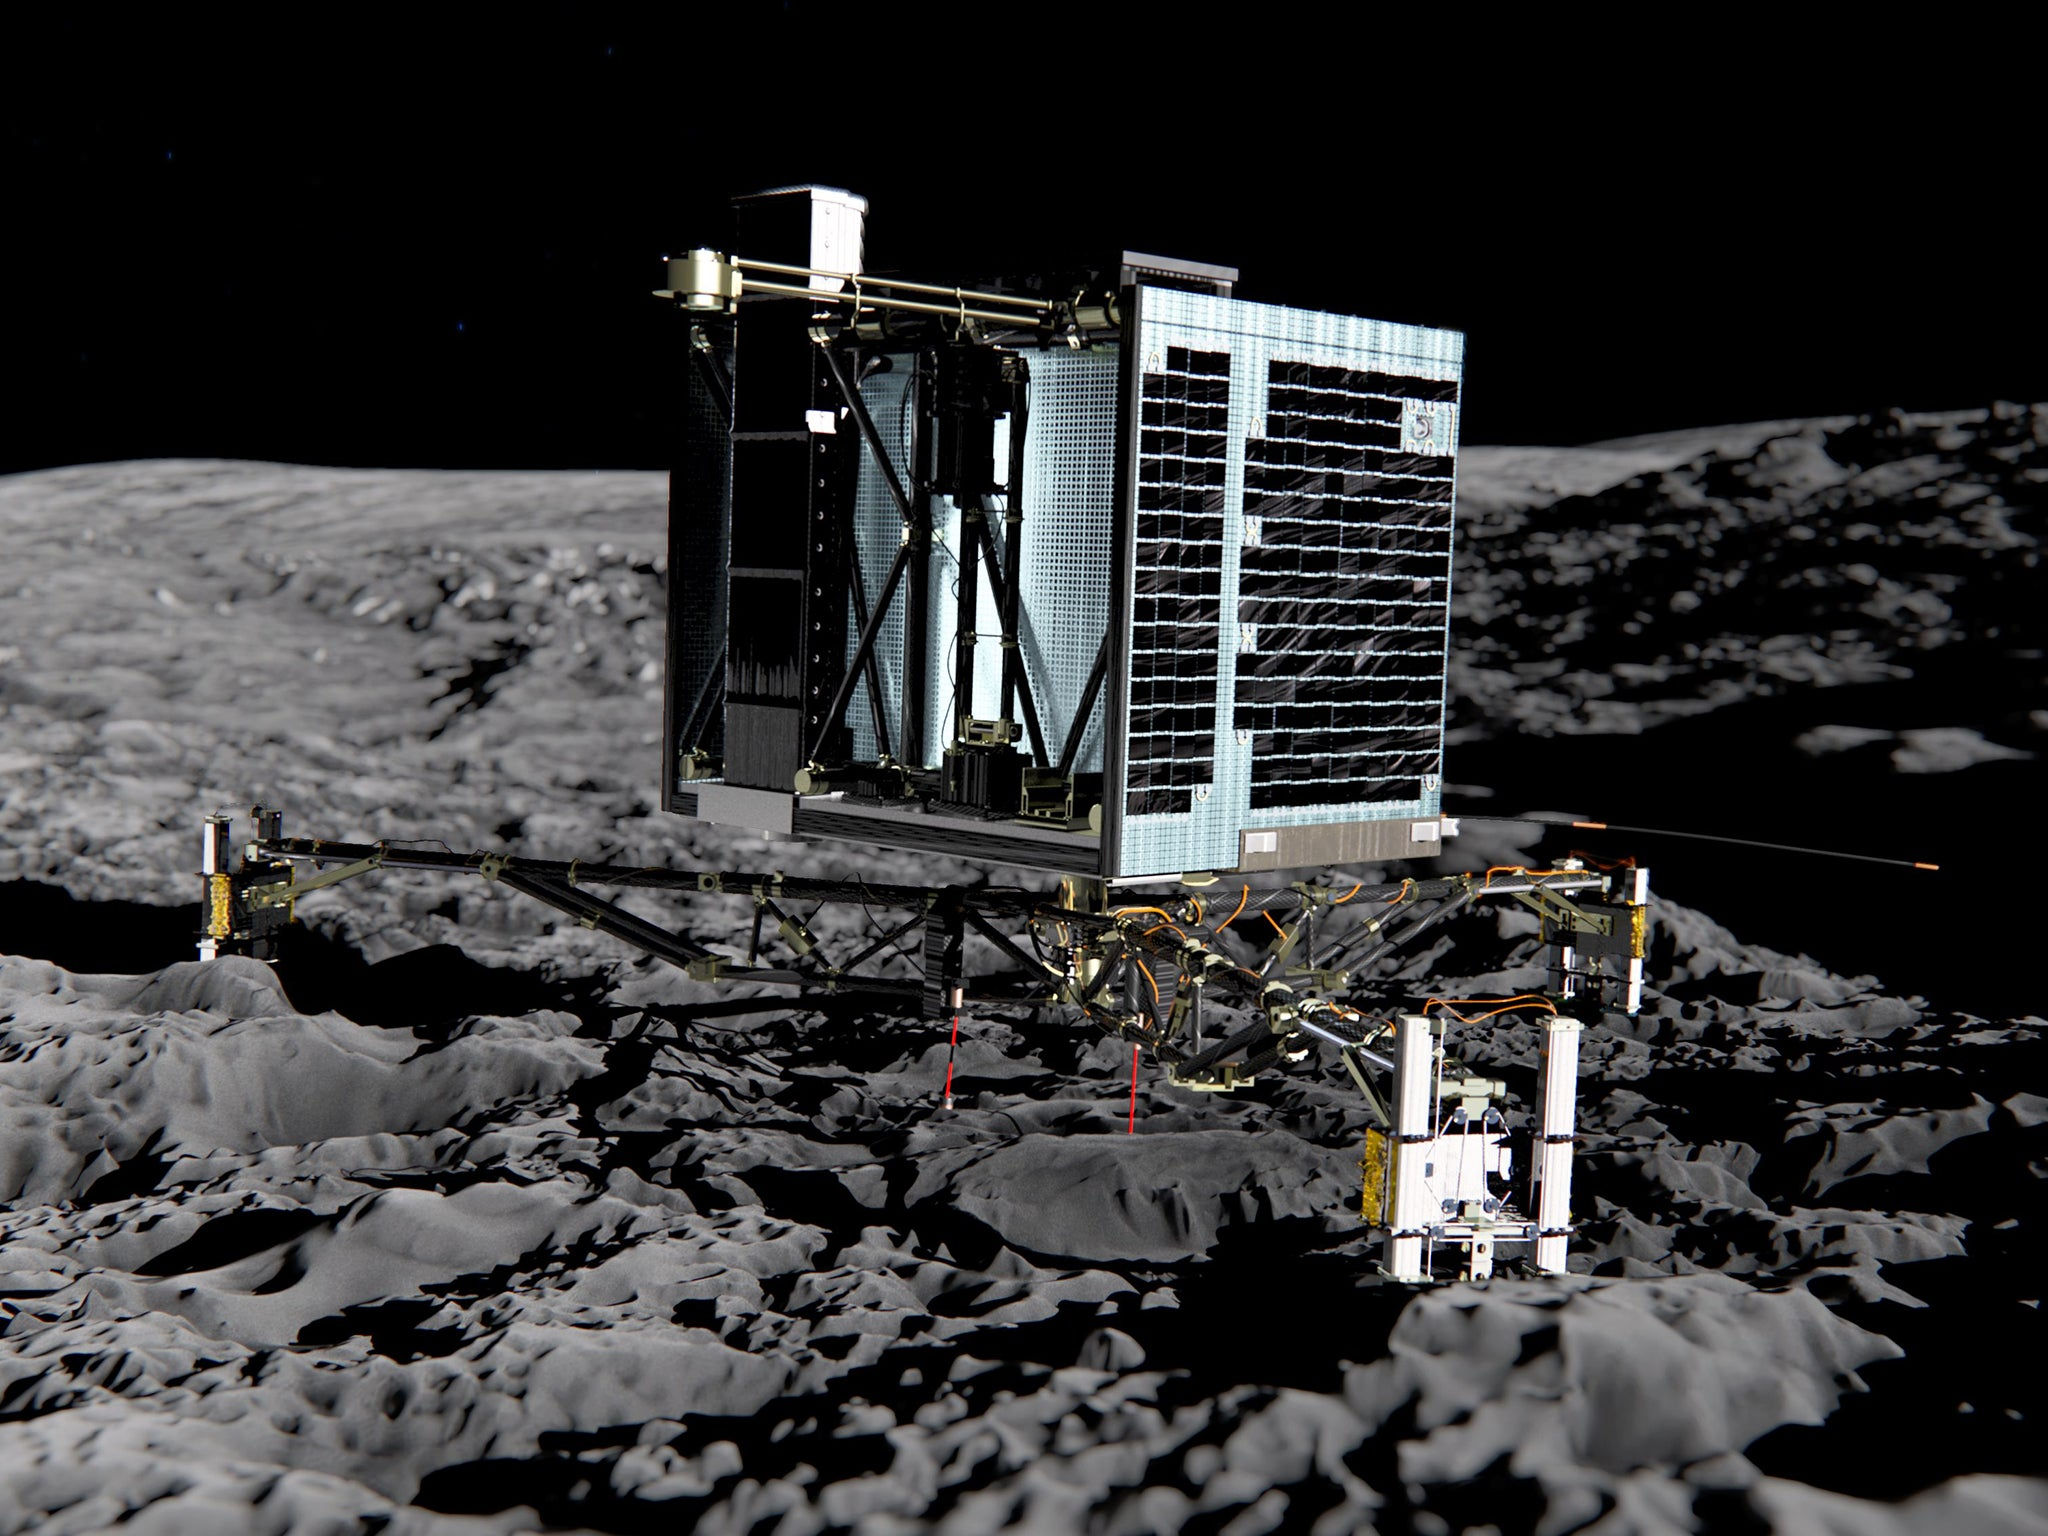 Philae lander found on comet almost two years after going missing